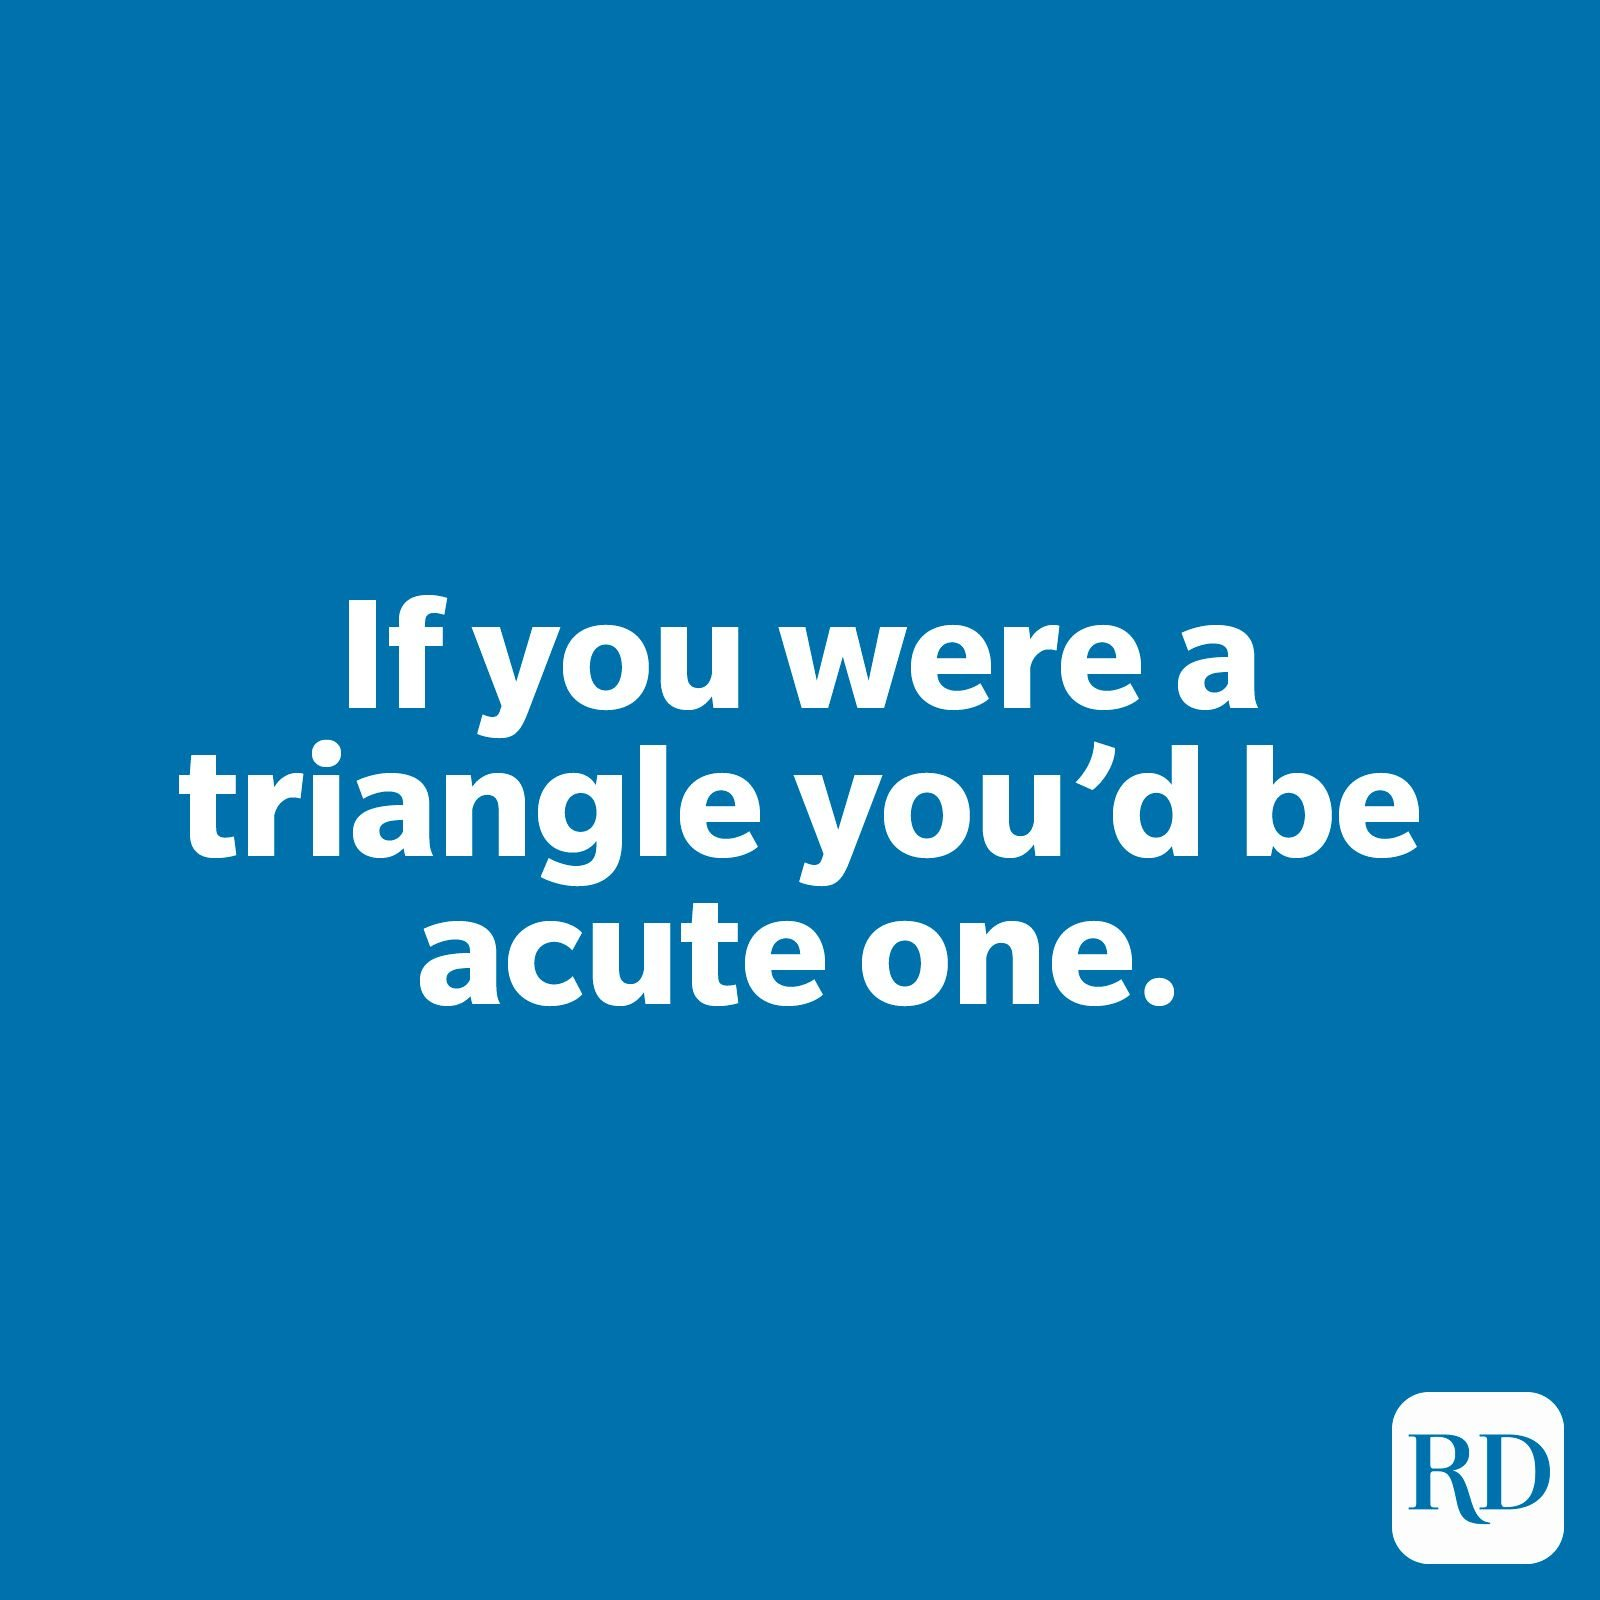 If you were a triangle you'd be acute one.